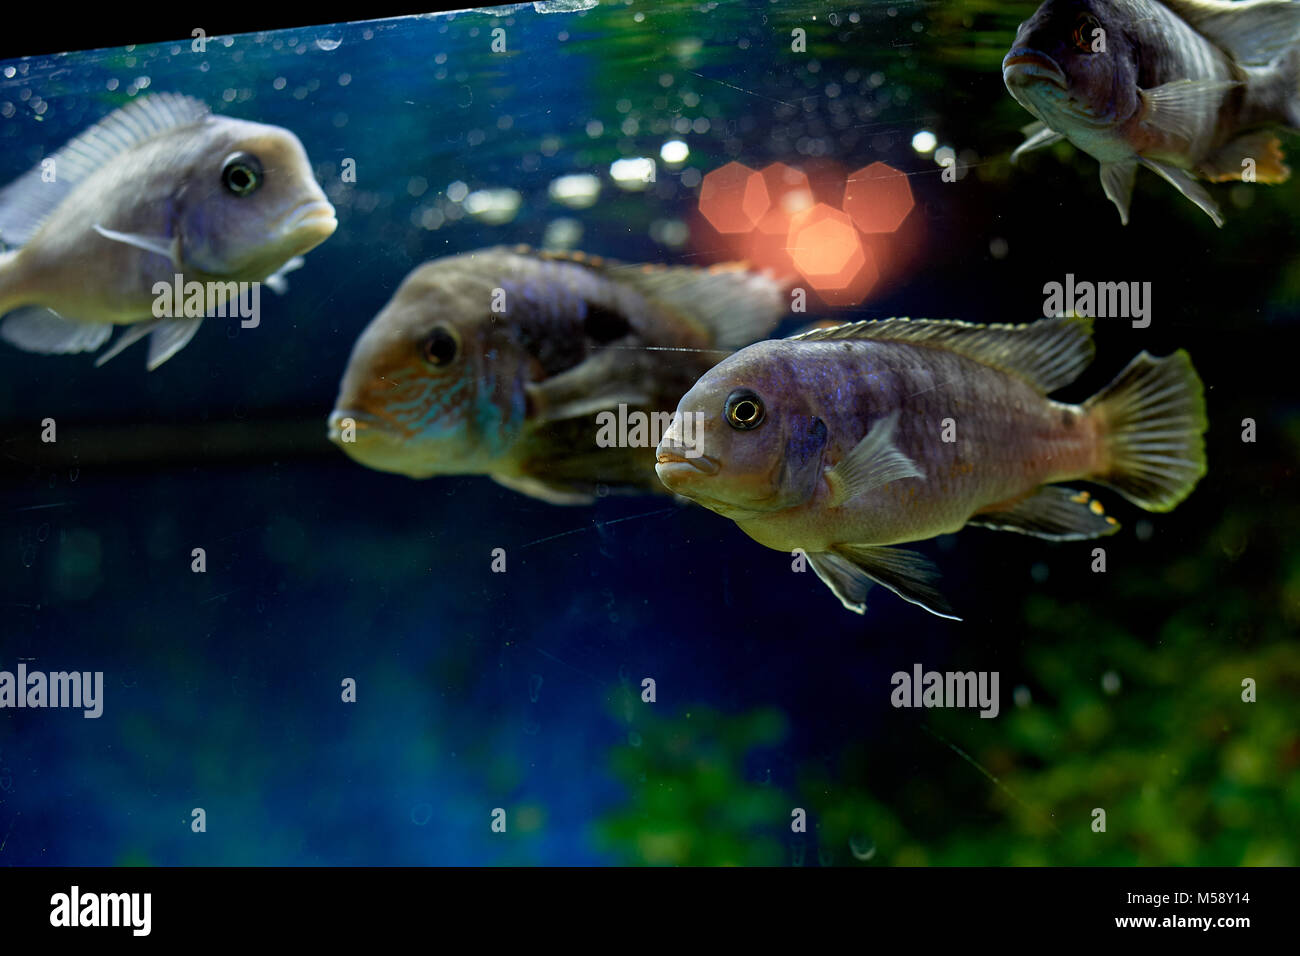 Fish hawaii red stock photos fish hawaii red stock for Dream about fish out of water